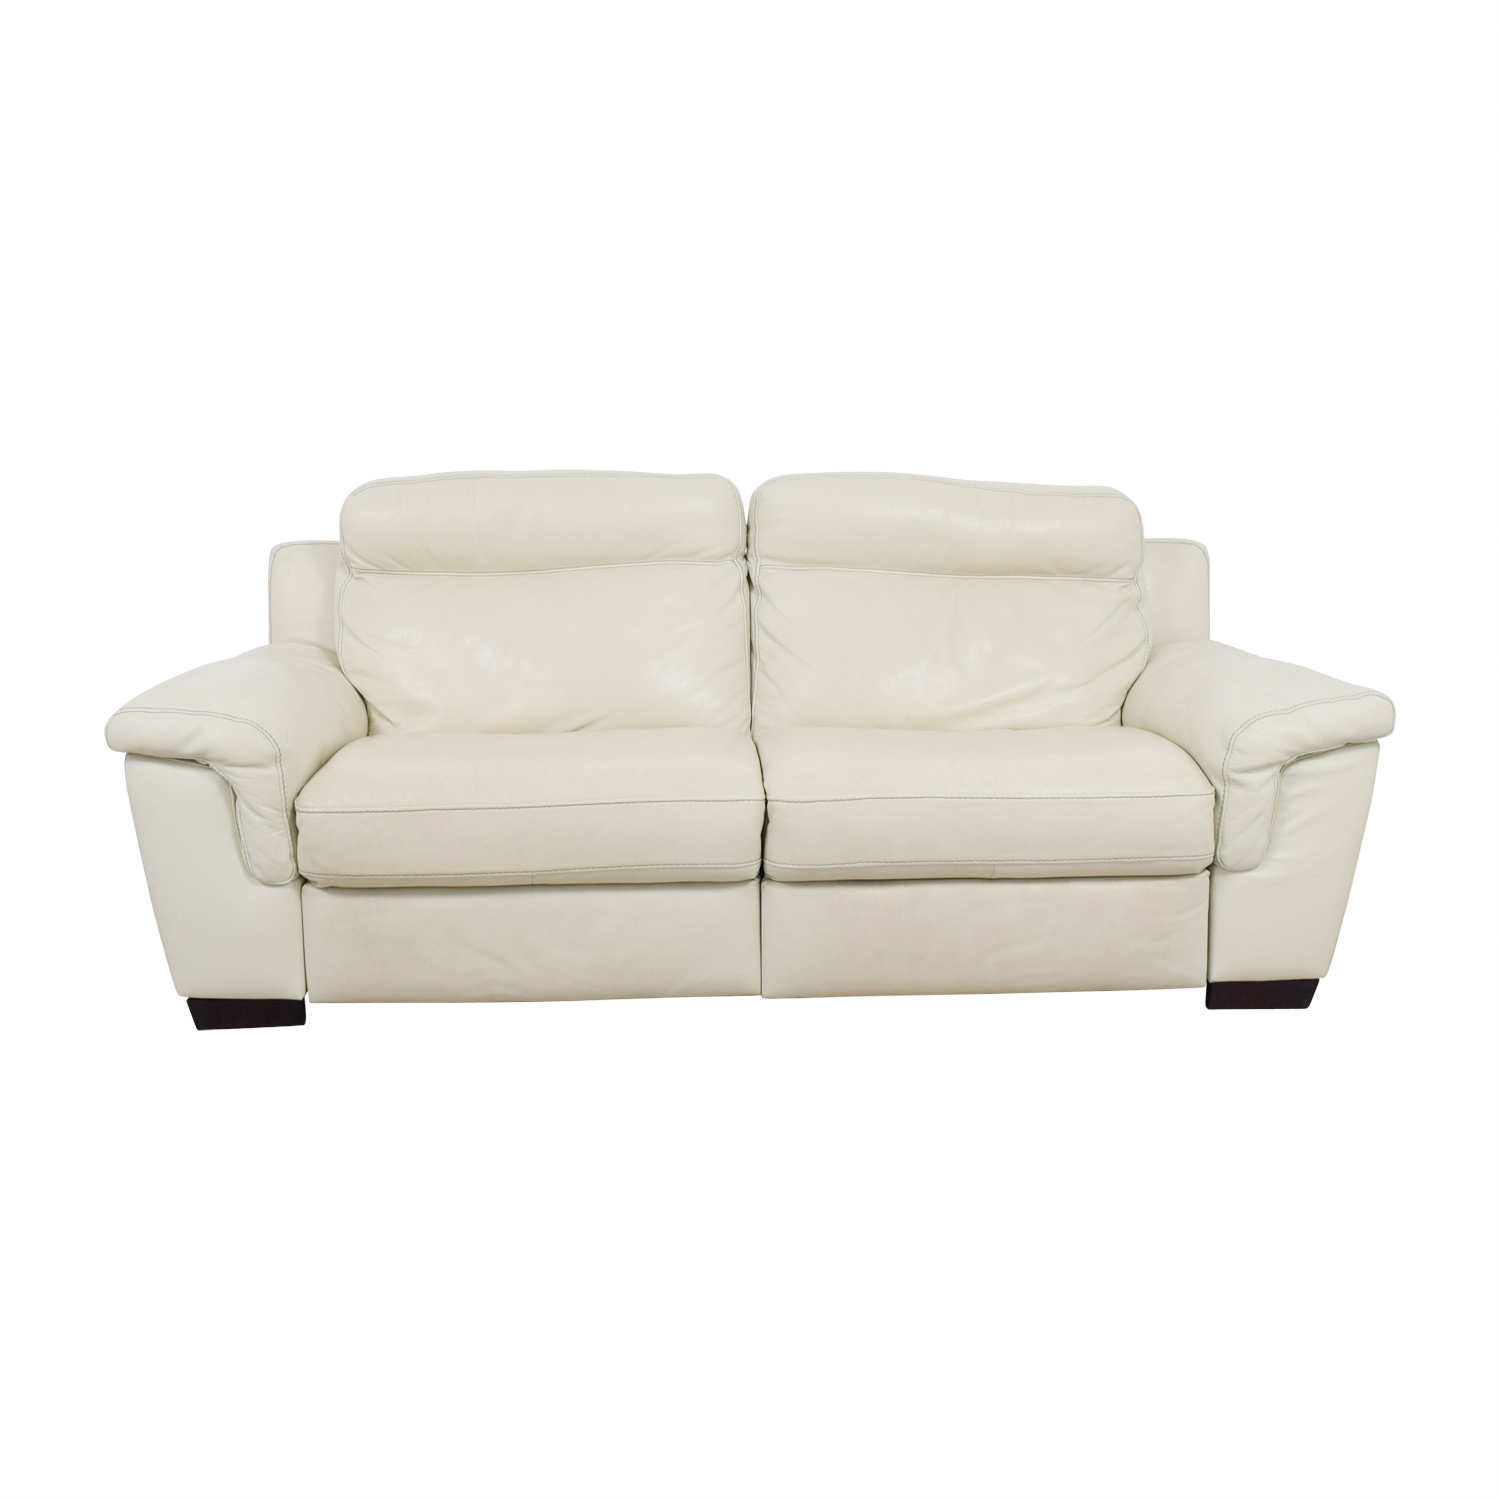 69% OFF - Macy\'s Macy\'s Off White Leather Recliner Sofa / Sofas